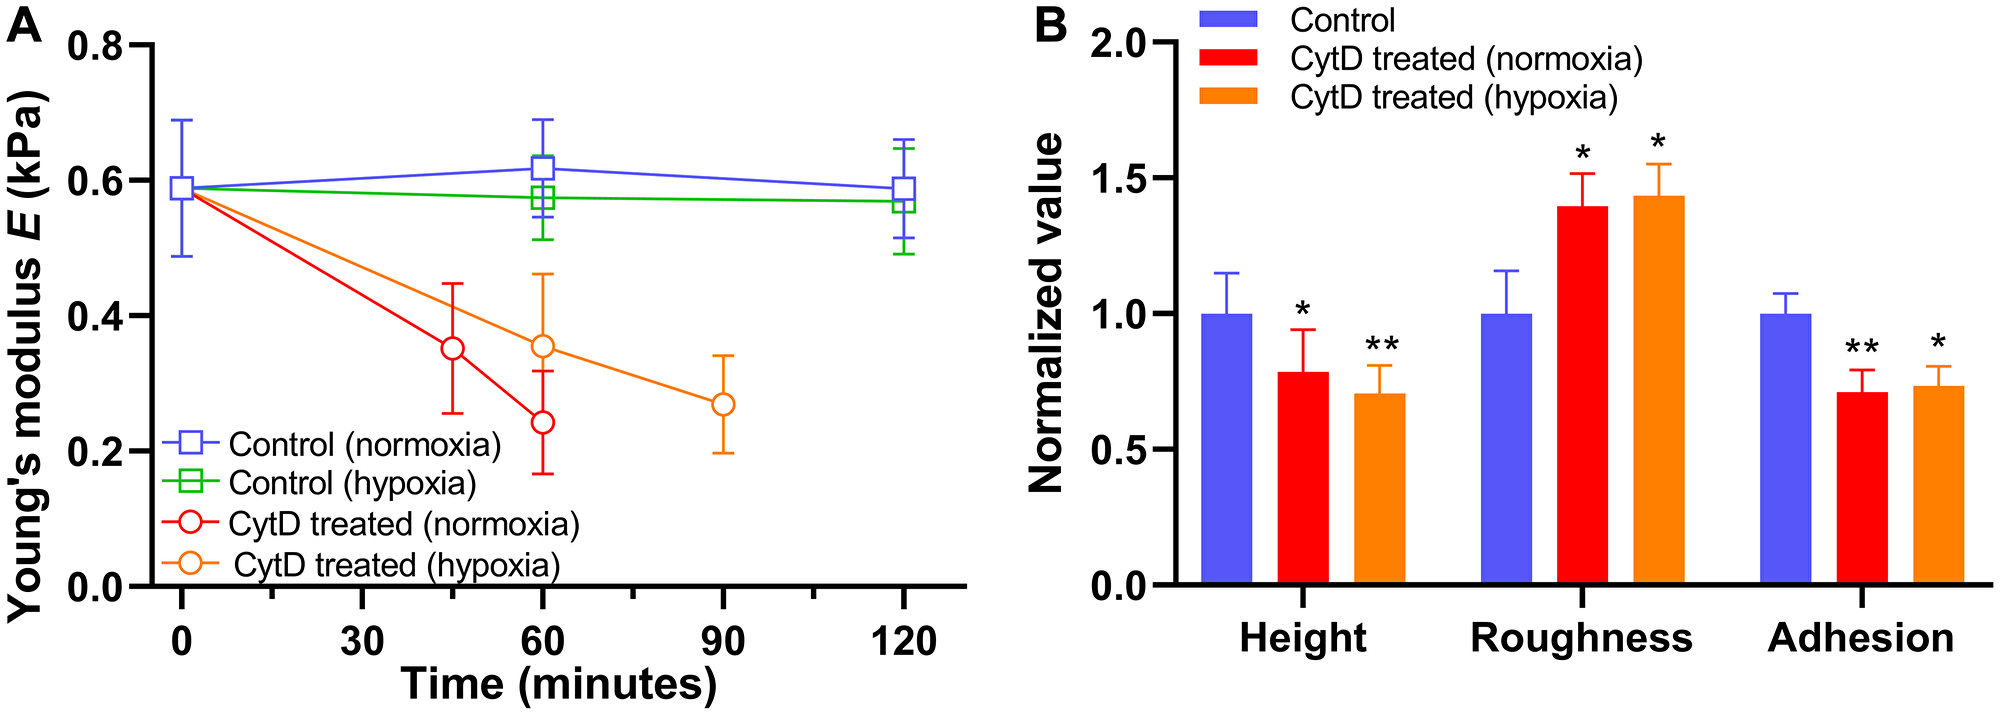 Alteration in biomechanical properties of PANC-1 cells exposed to 5 μM cytochalasin D (CytD) in normoxia and hypoxia.